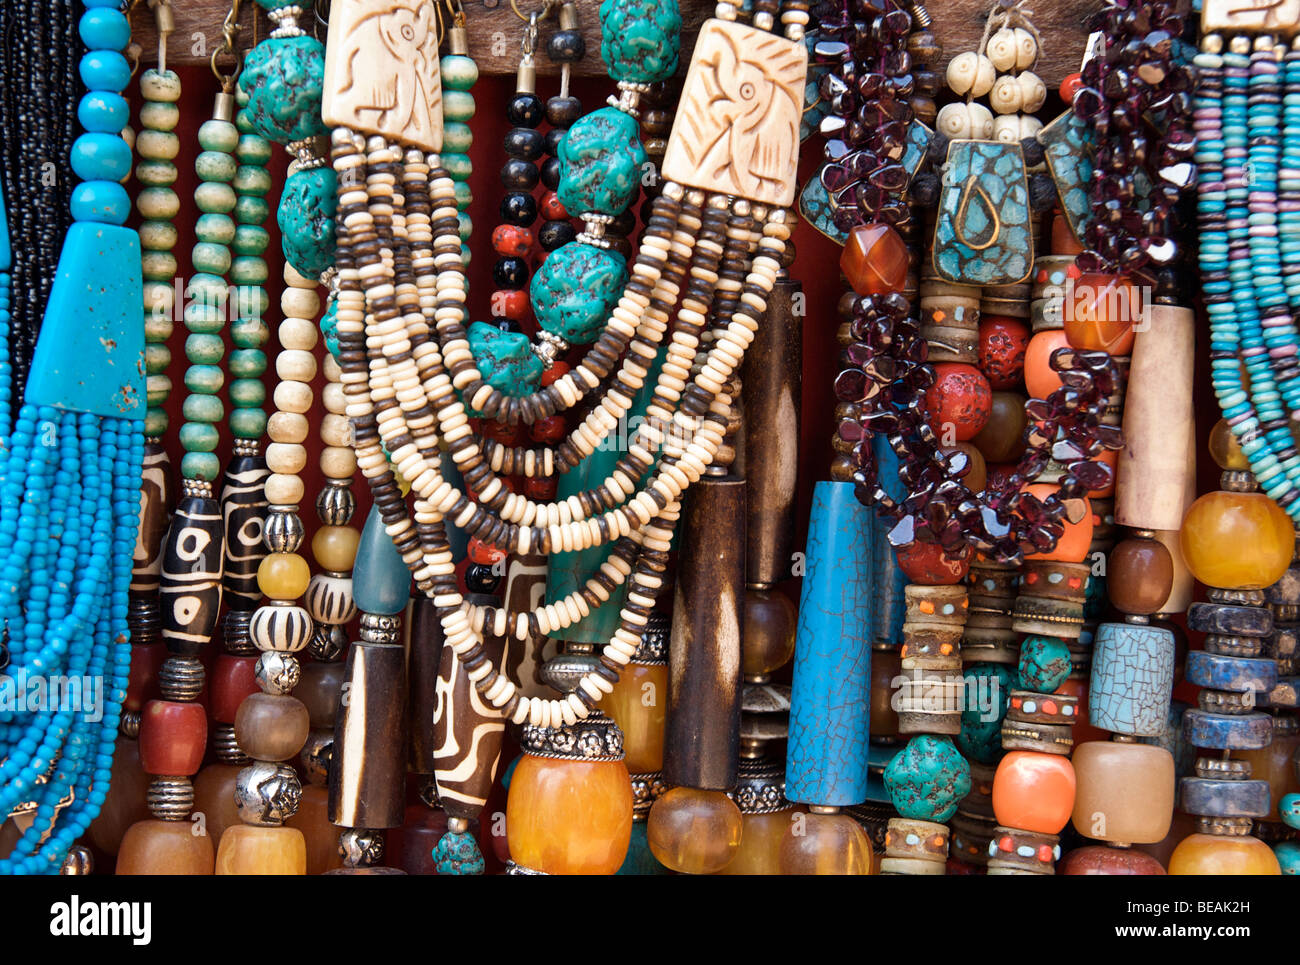 Detail of bead necklaces for sale on a stall of souvenirs. Nepal - Stock Image